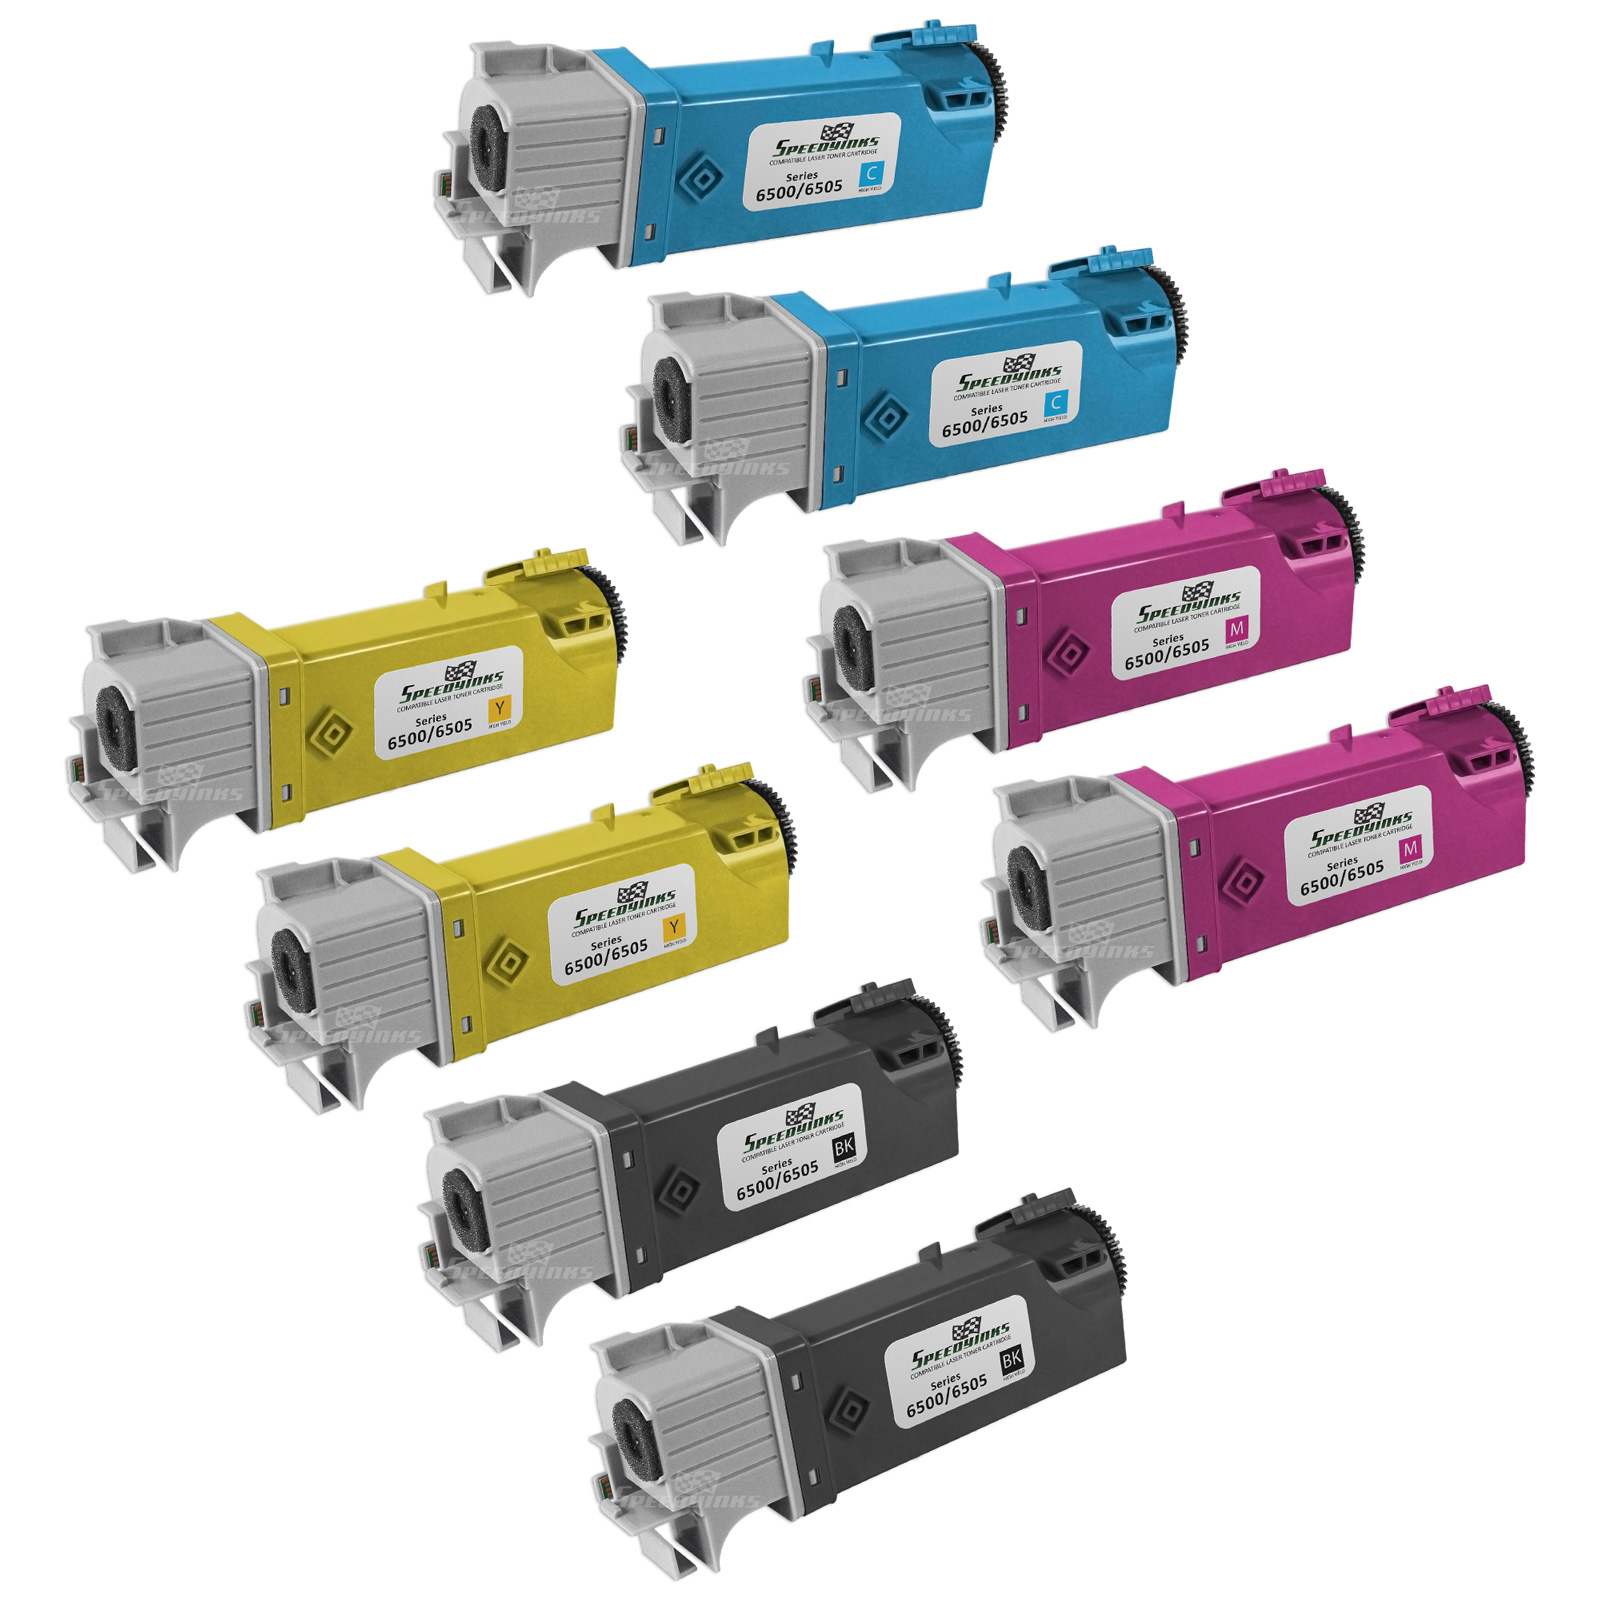 SpeedyInks - Compatible Xerox 6500 Set of 8 Toner Cartridges 106R01597 106R01596 106R01595 106R01594 for Phaser 6500, WorkCentre 6505 Printers: 2 Black, 2 Cyan, 2 Magenta, 2 Yellow